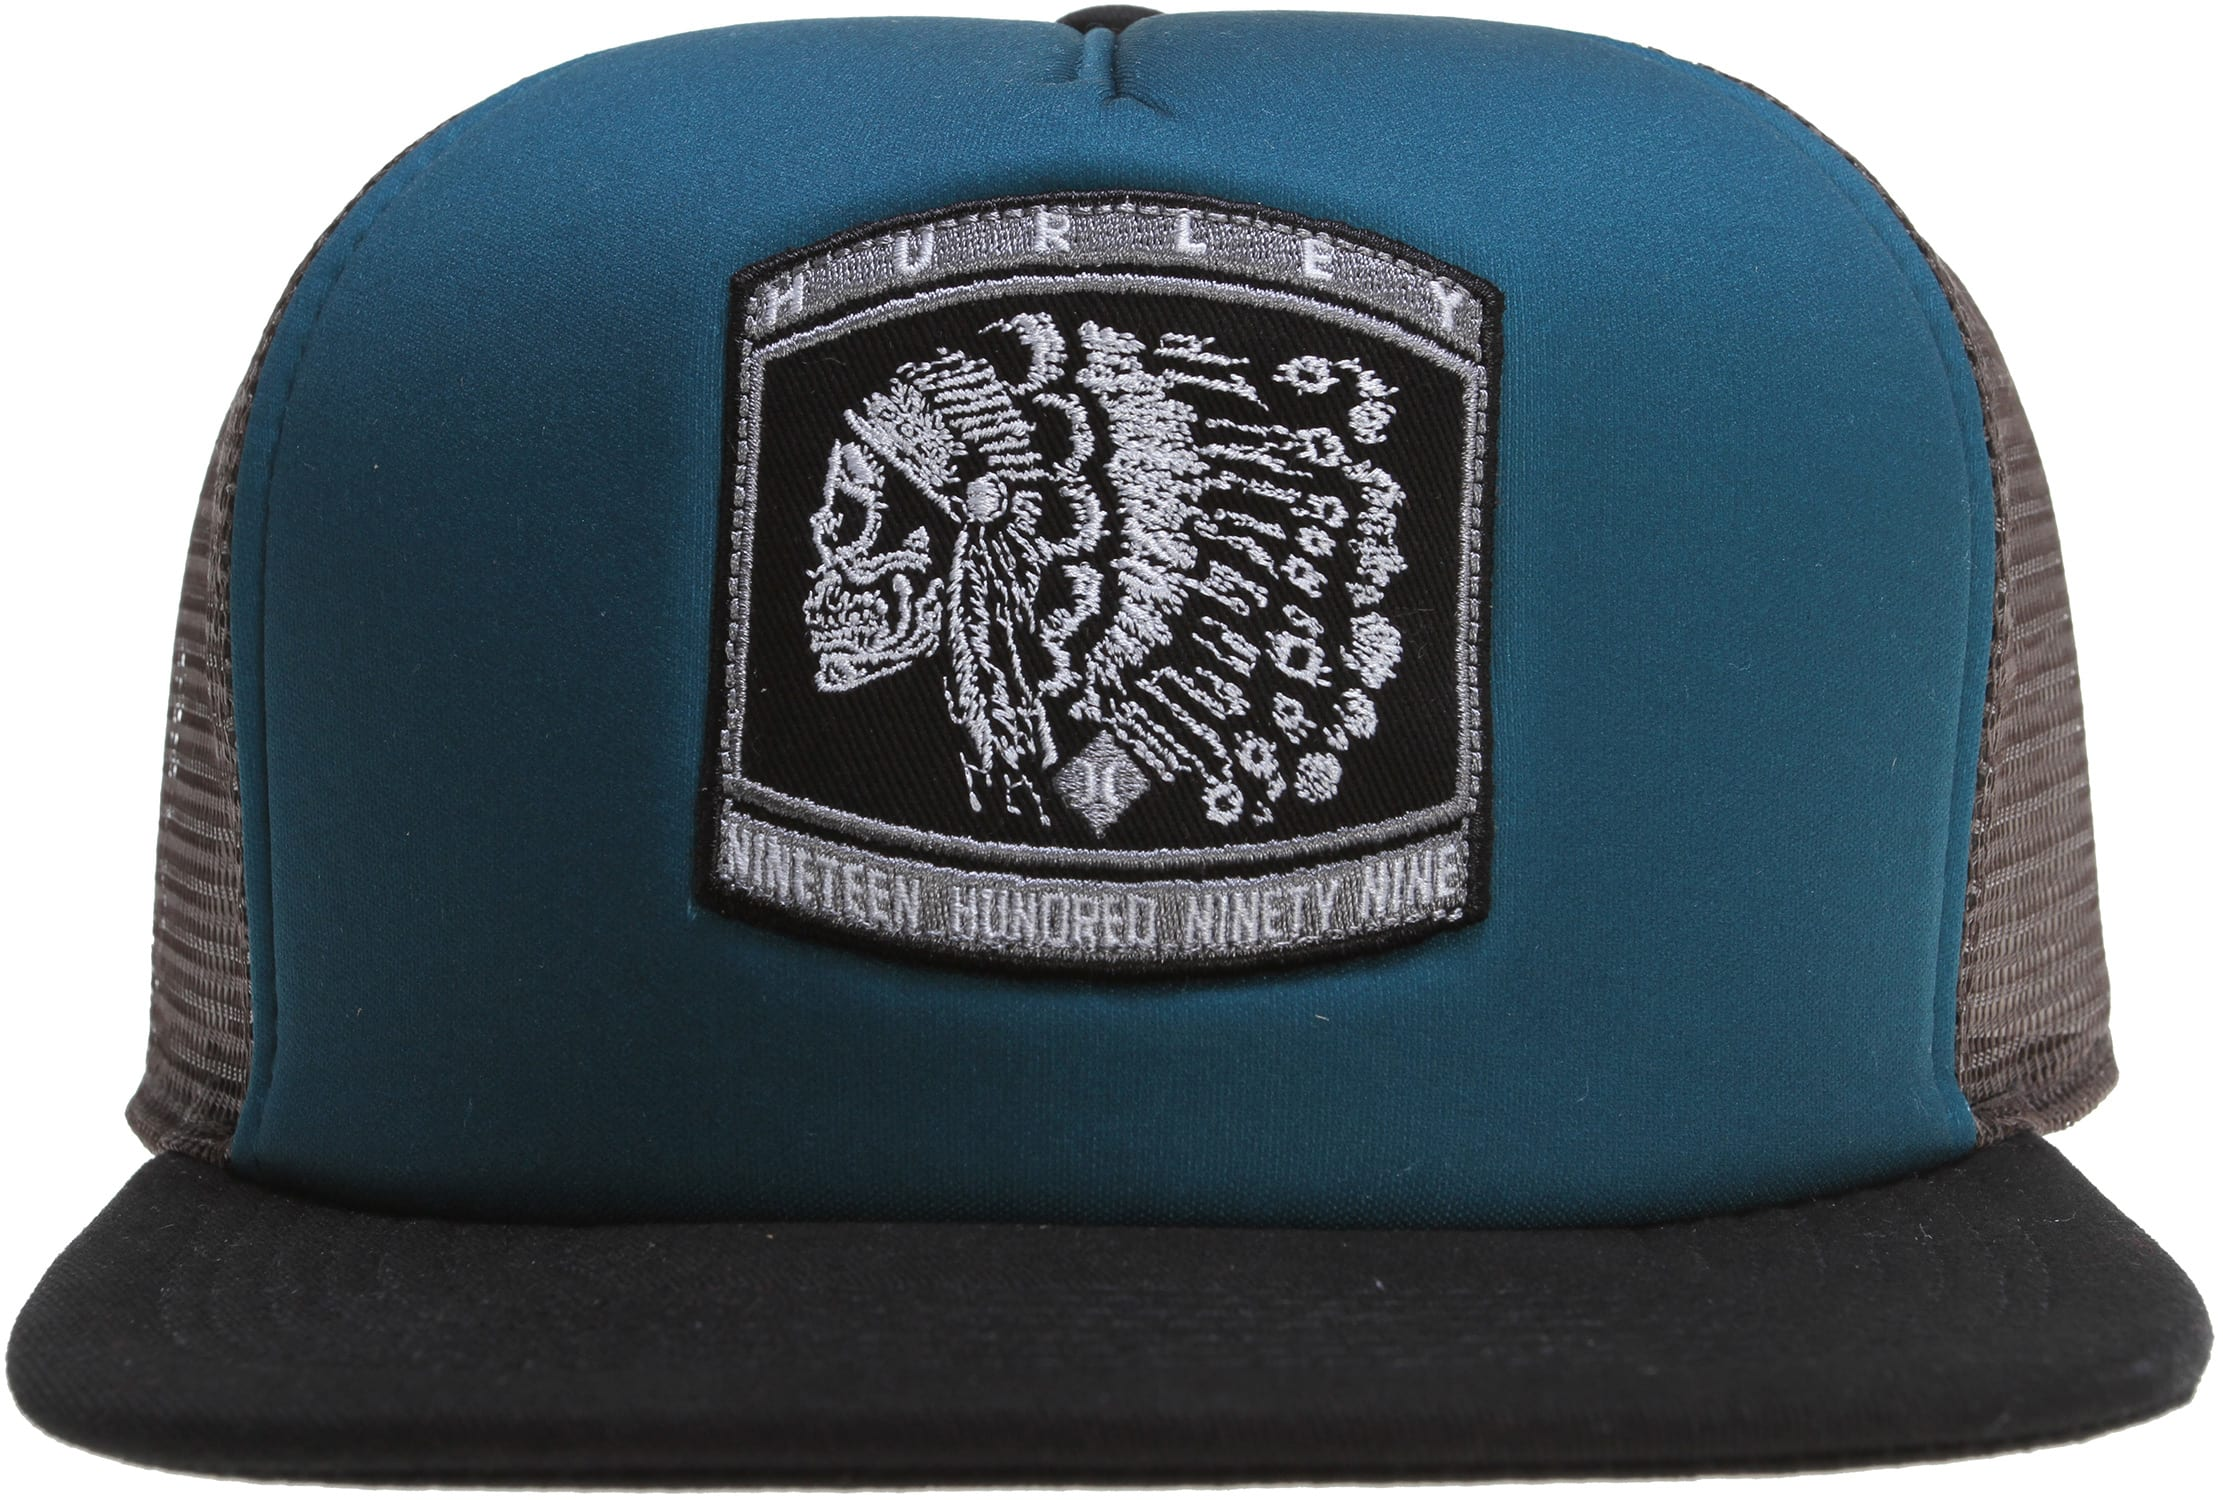 Hurley All Day Trucker Cap - thumbnail 1 a4308cf6d2a